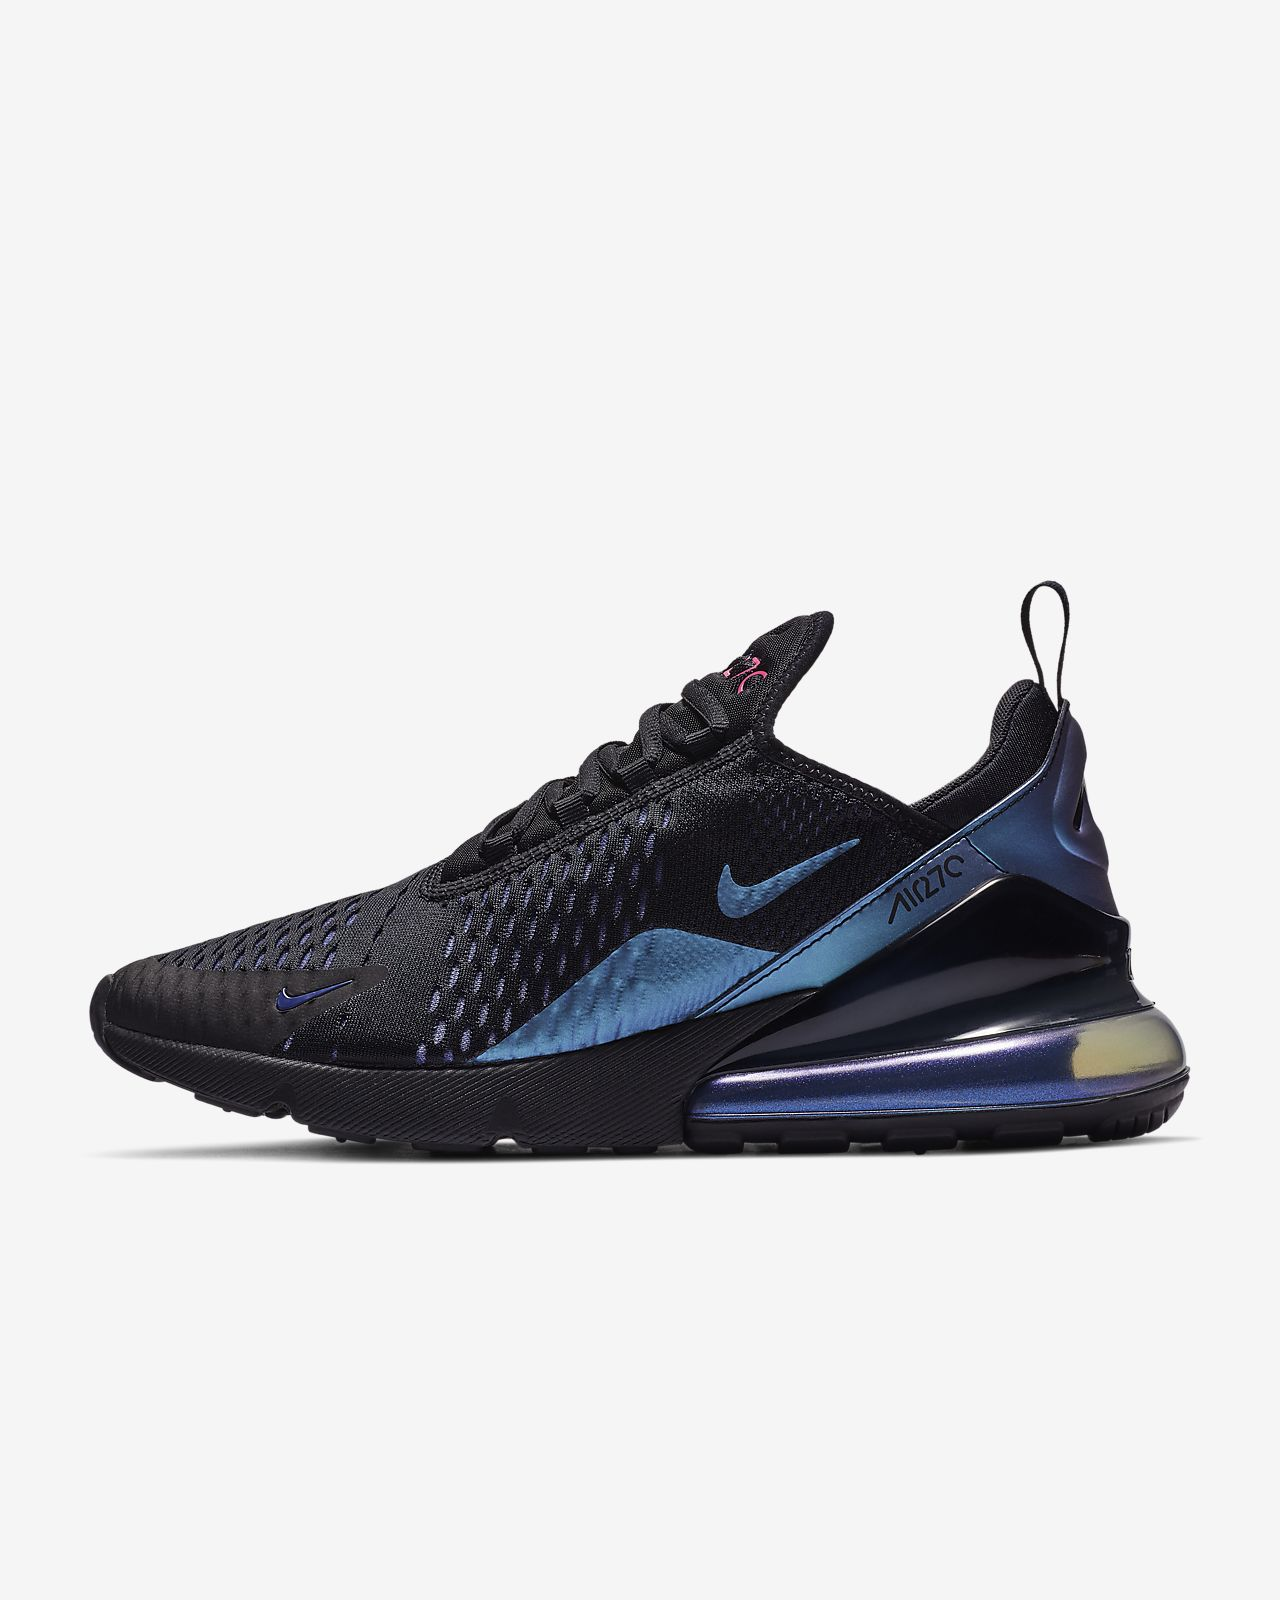 low priced 0eb84 09e15 ... Buty męskie Nike Air Max 270